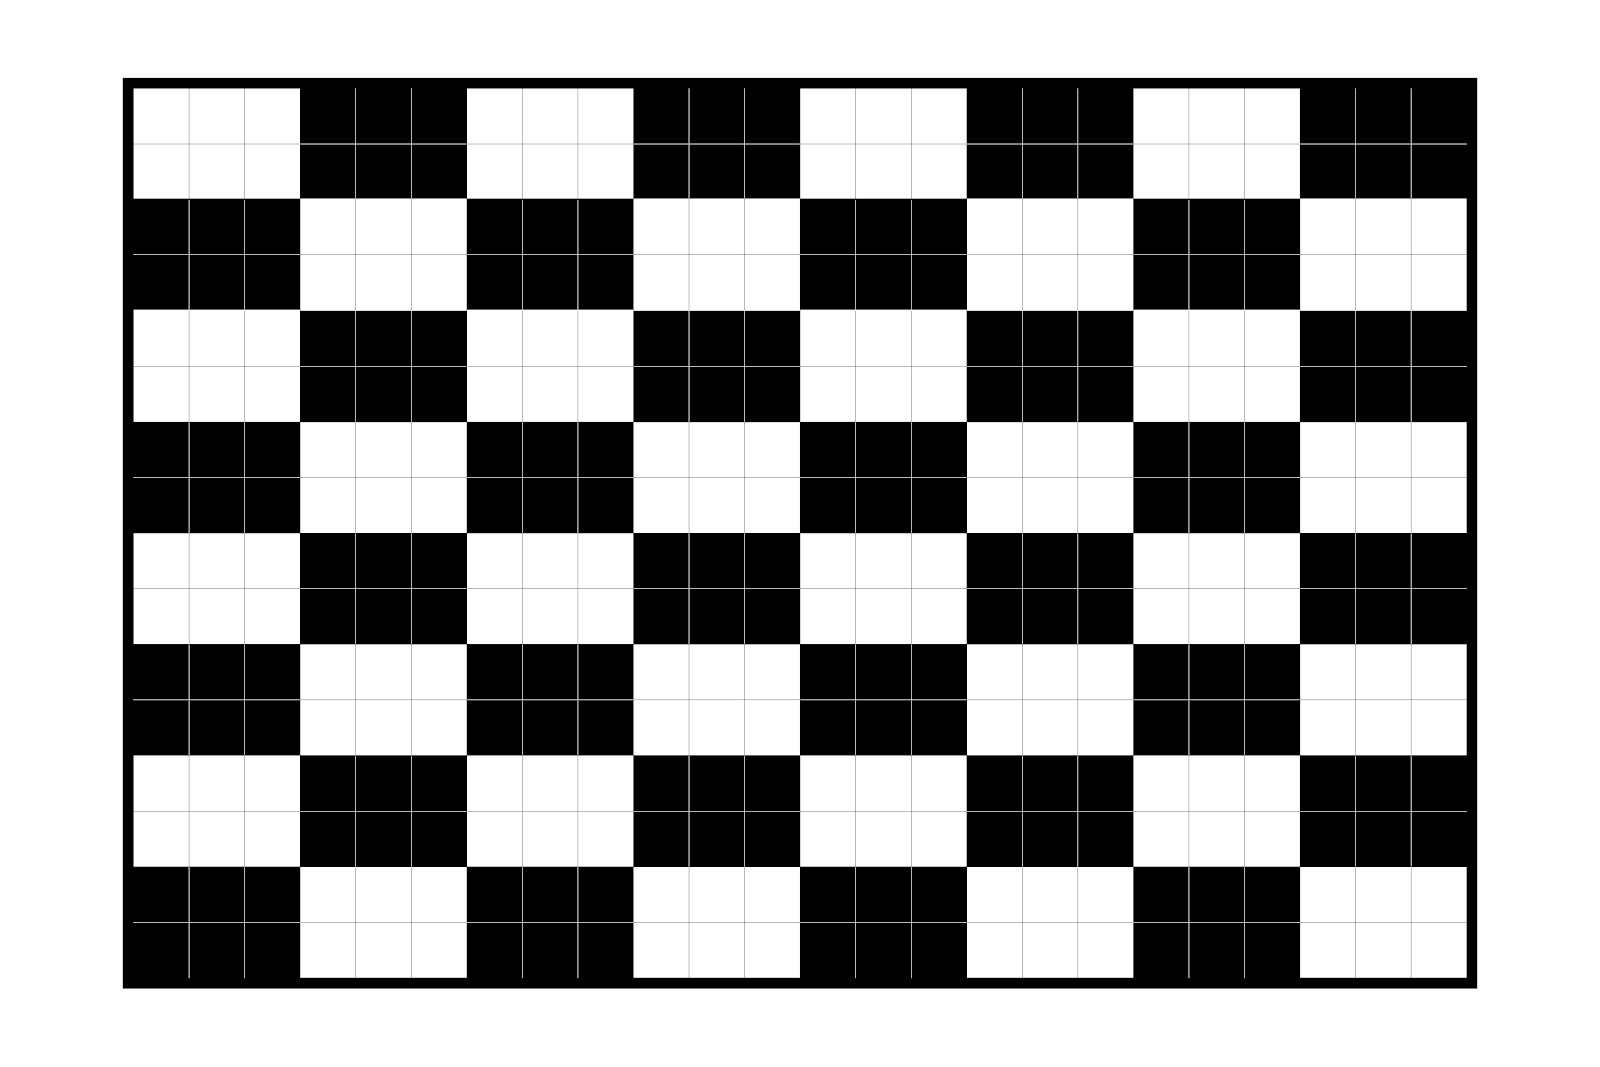 It's just an image of Breathtaking Printable Chess Board